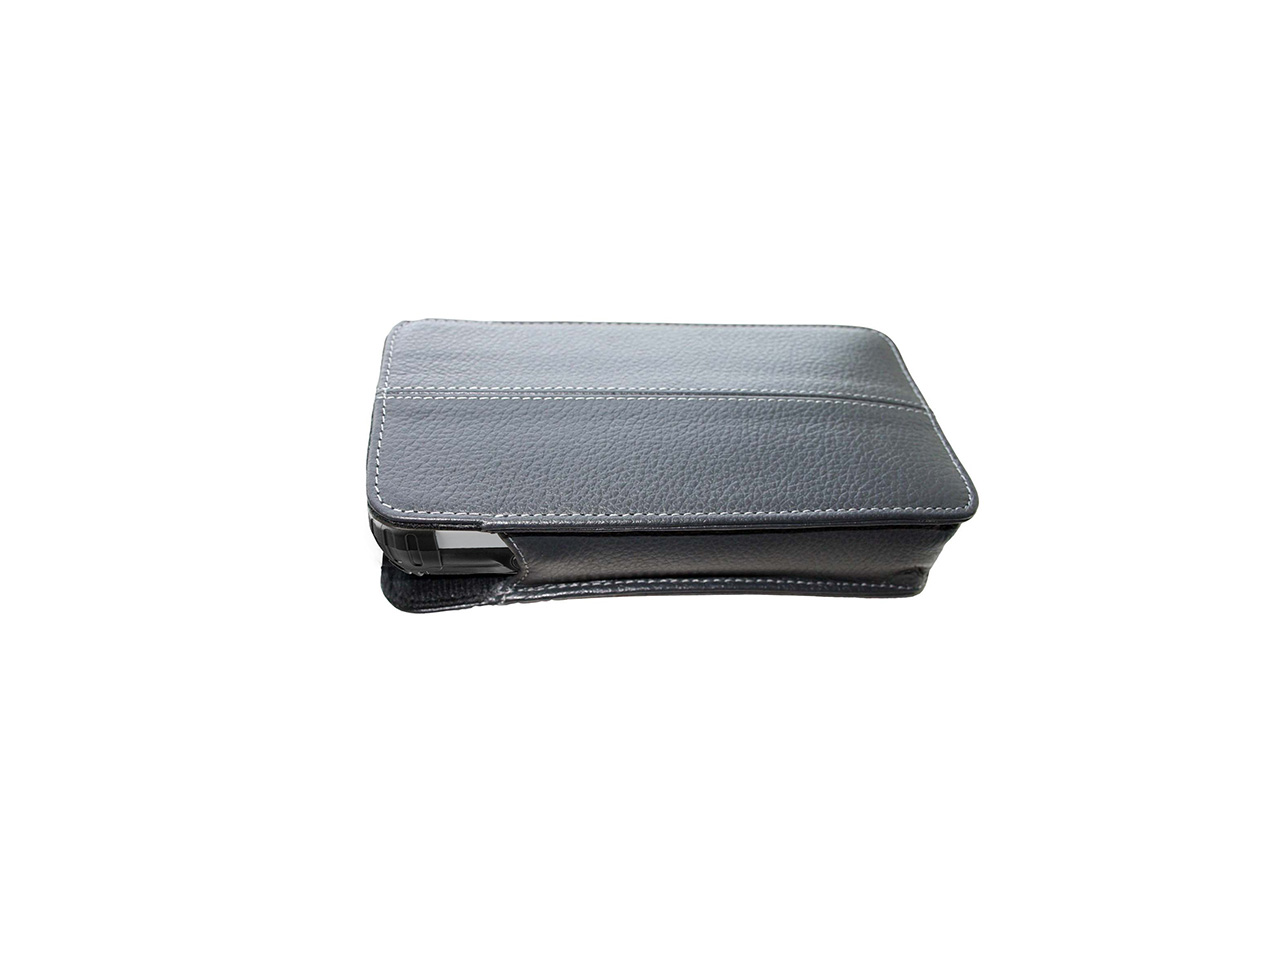 NX-2020-Carry case.jpg